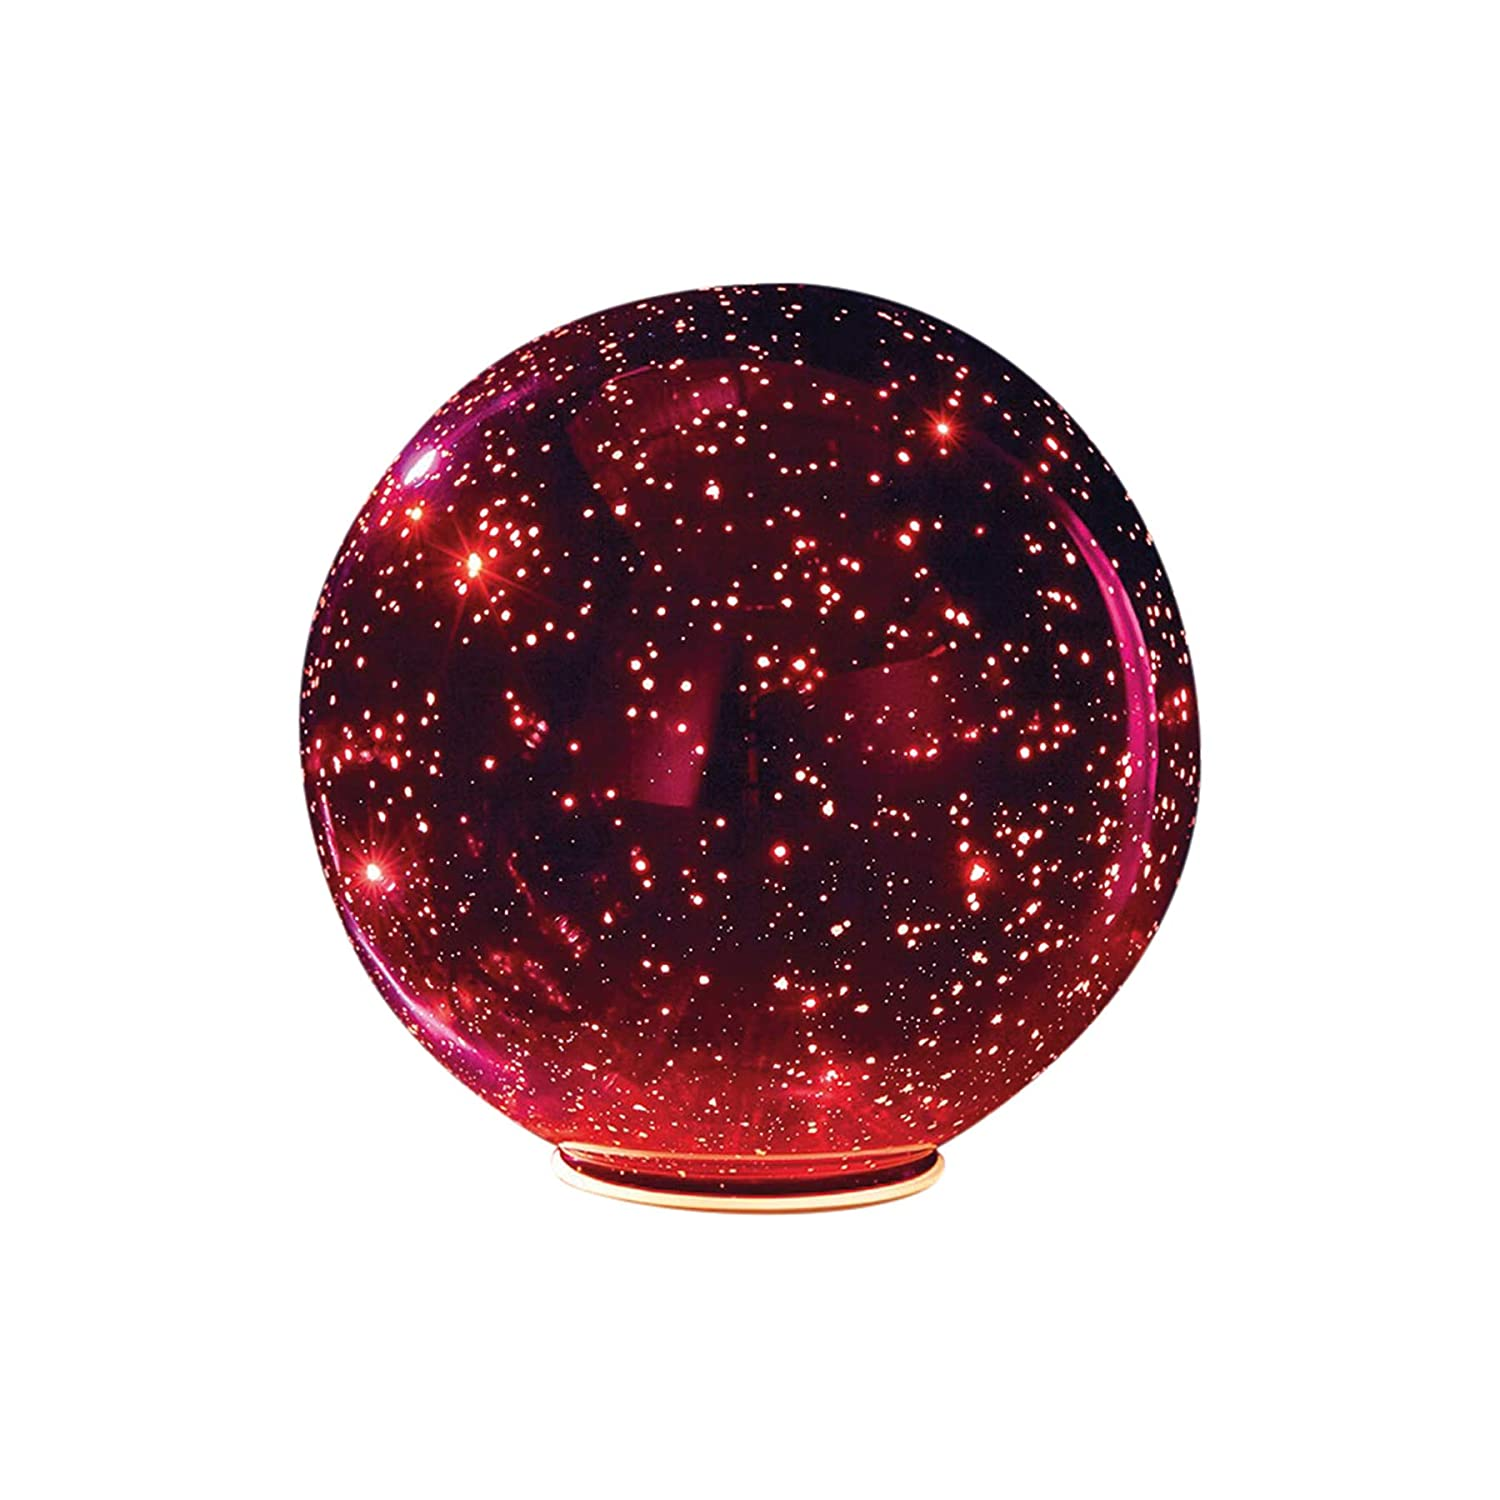 SIGNALS Lighted Mercury Glass Ball Sphere for Holiday Home Decor - Battery Operated - Red - Large